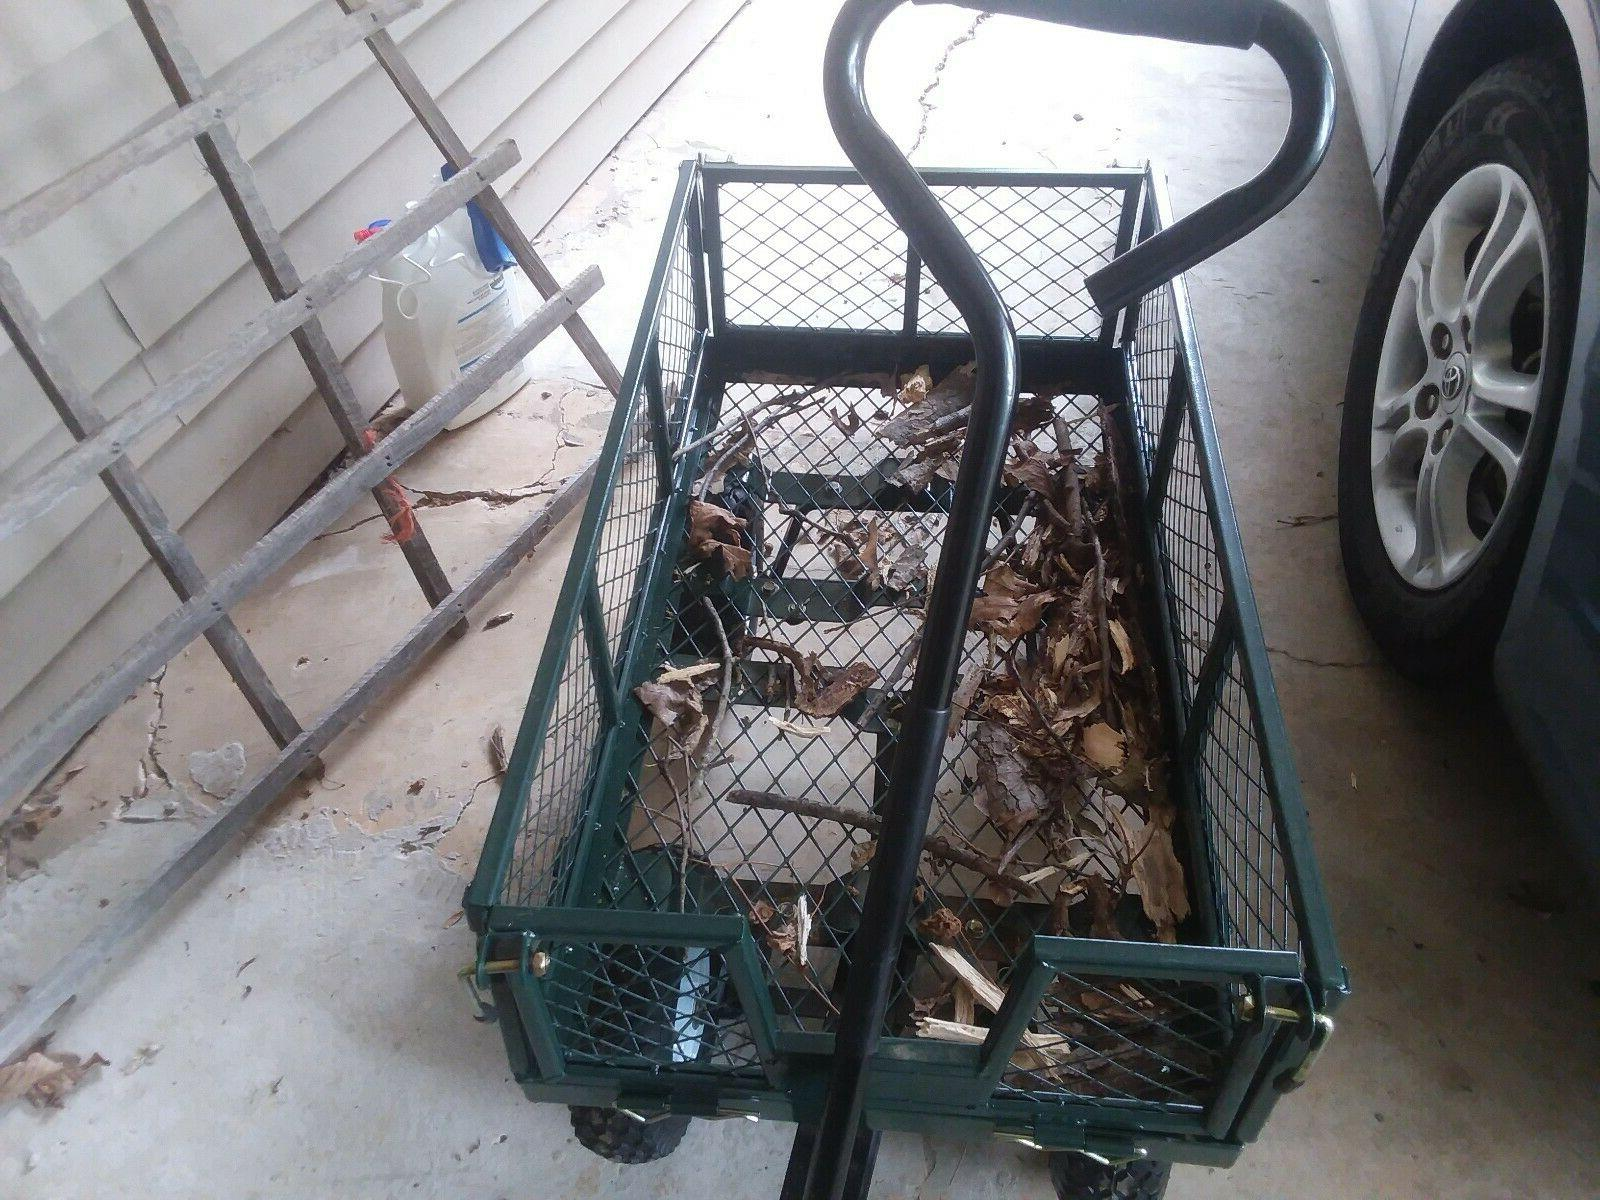 Garden Yard Lawn Cart Dumper Utility barrow Duty